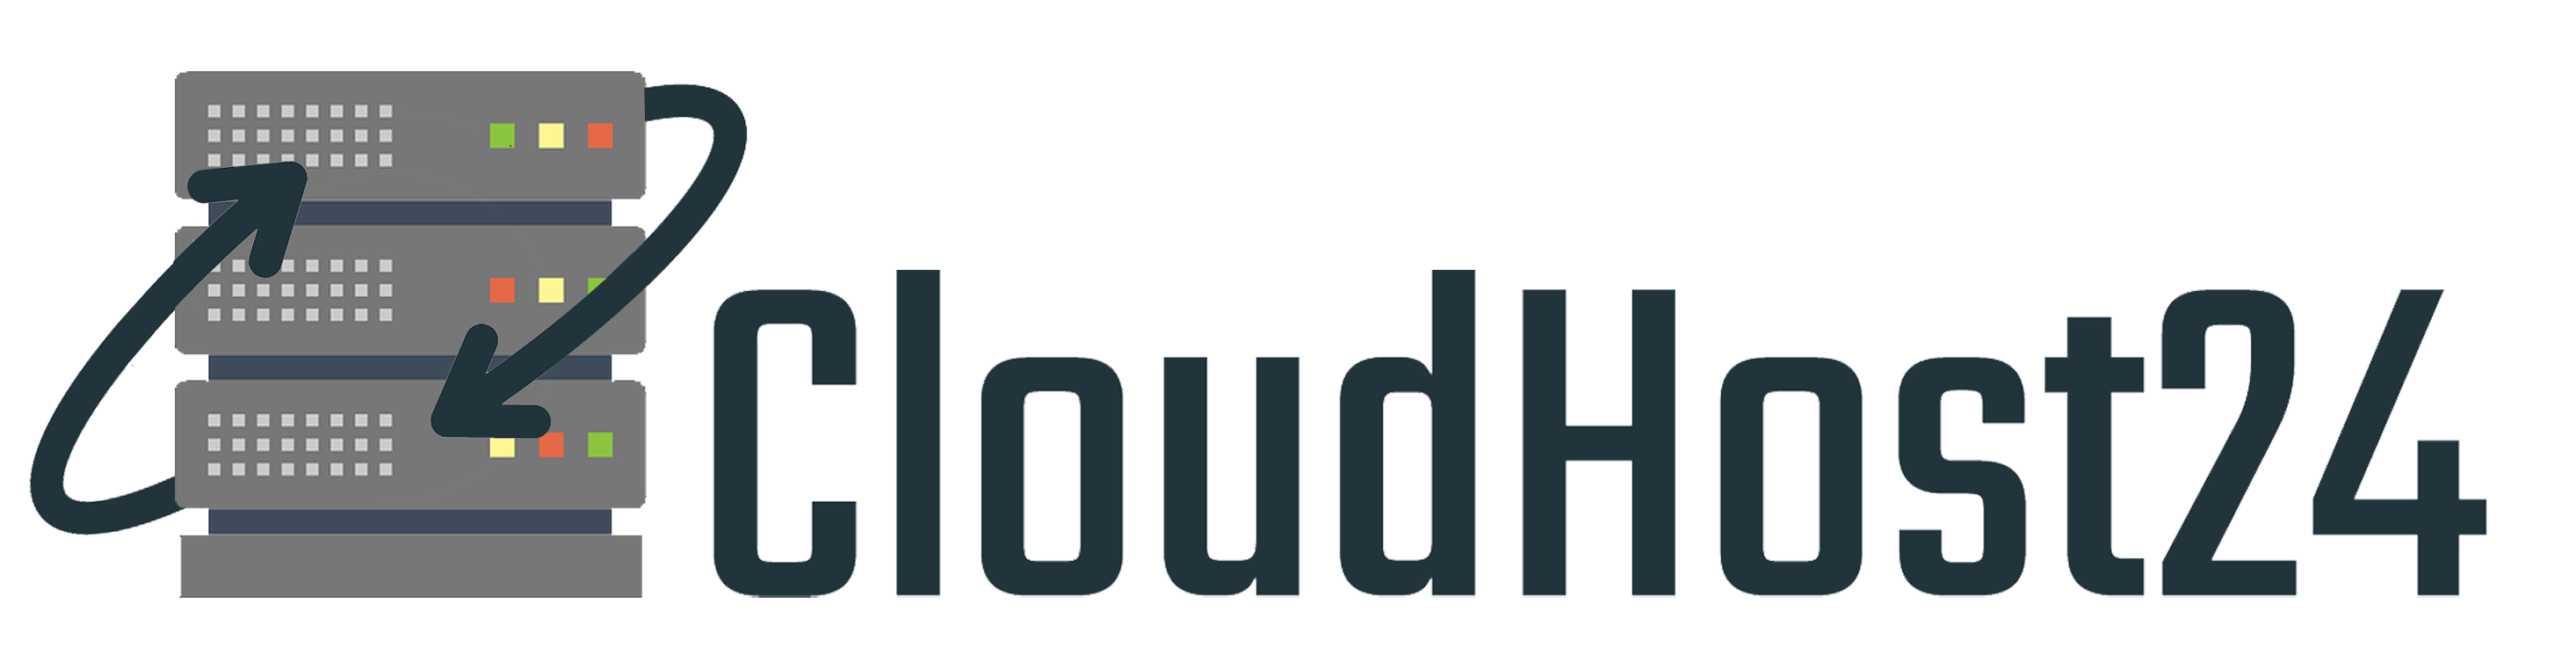 CloudHost24.at